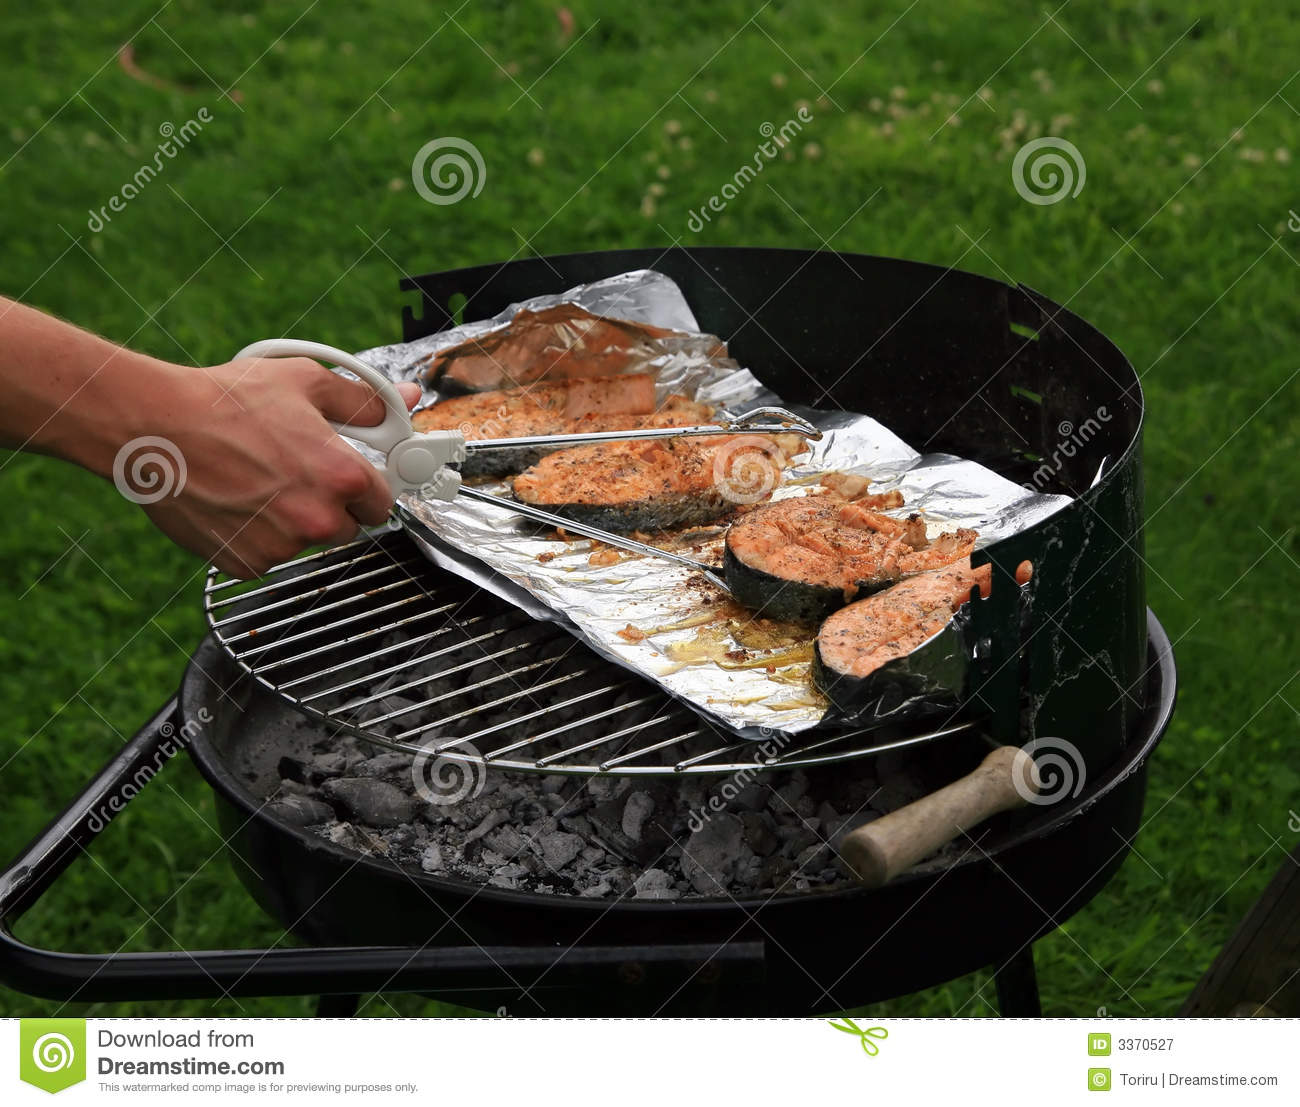 Fish on the grill royalty free stock photography image for The fish grill